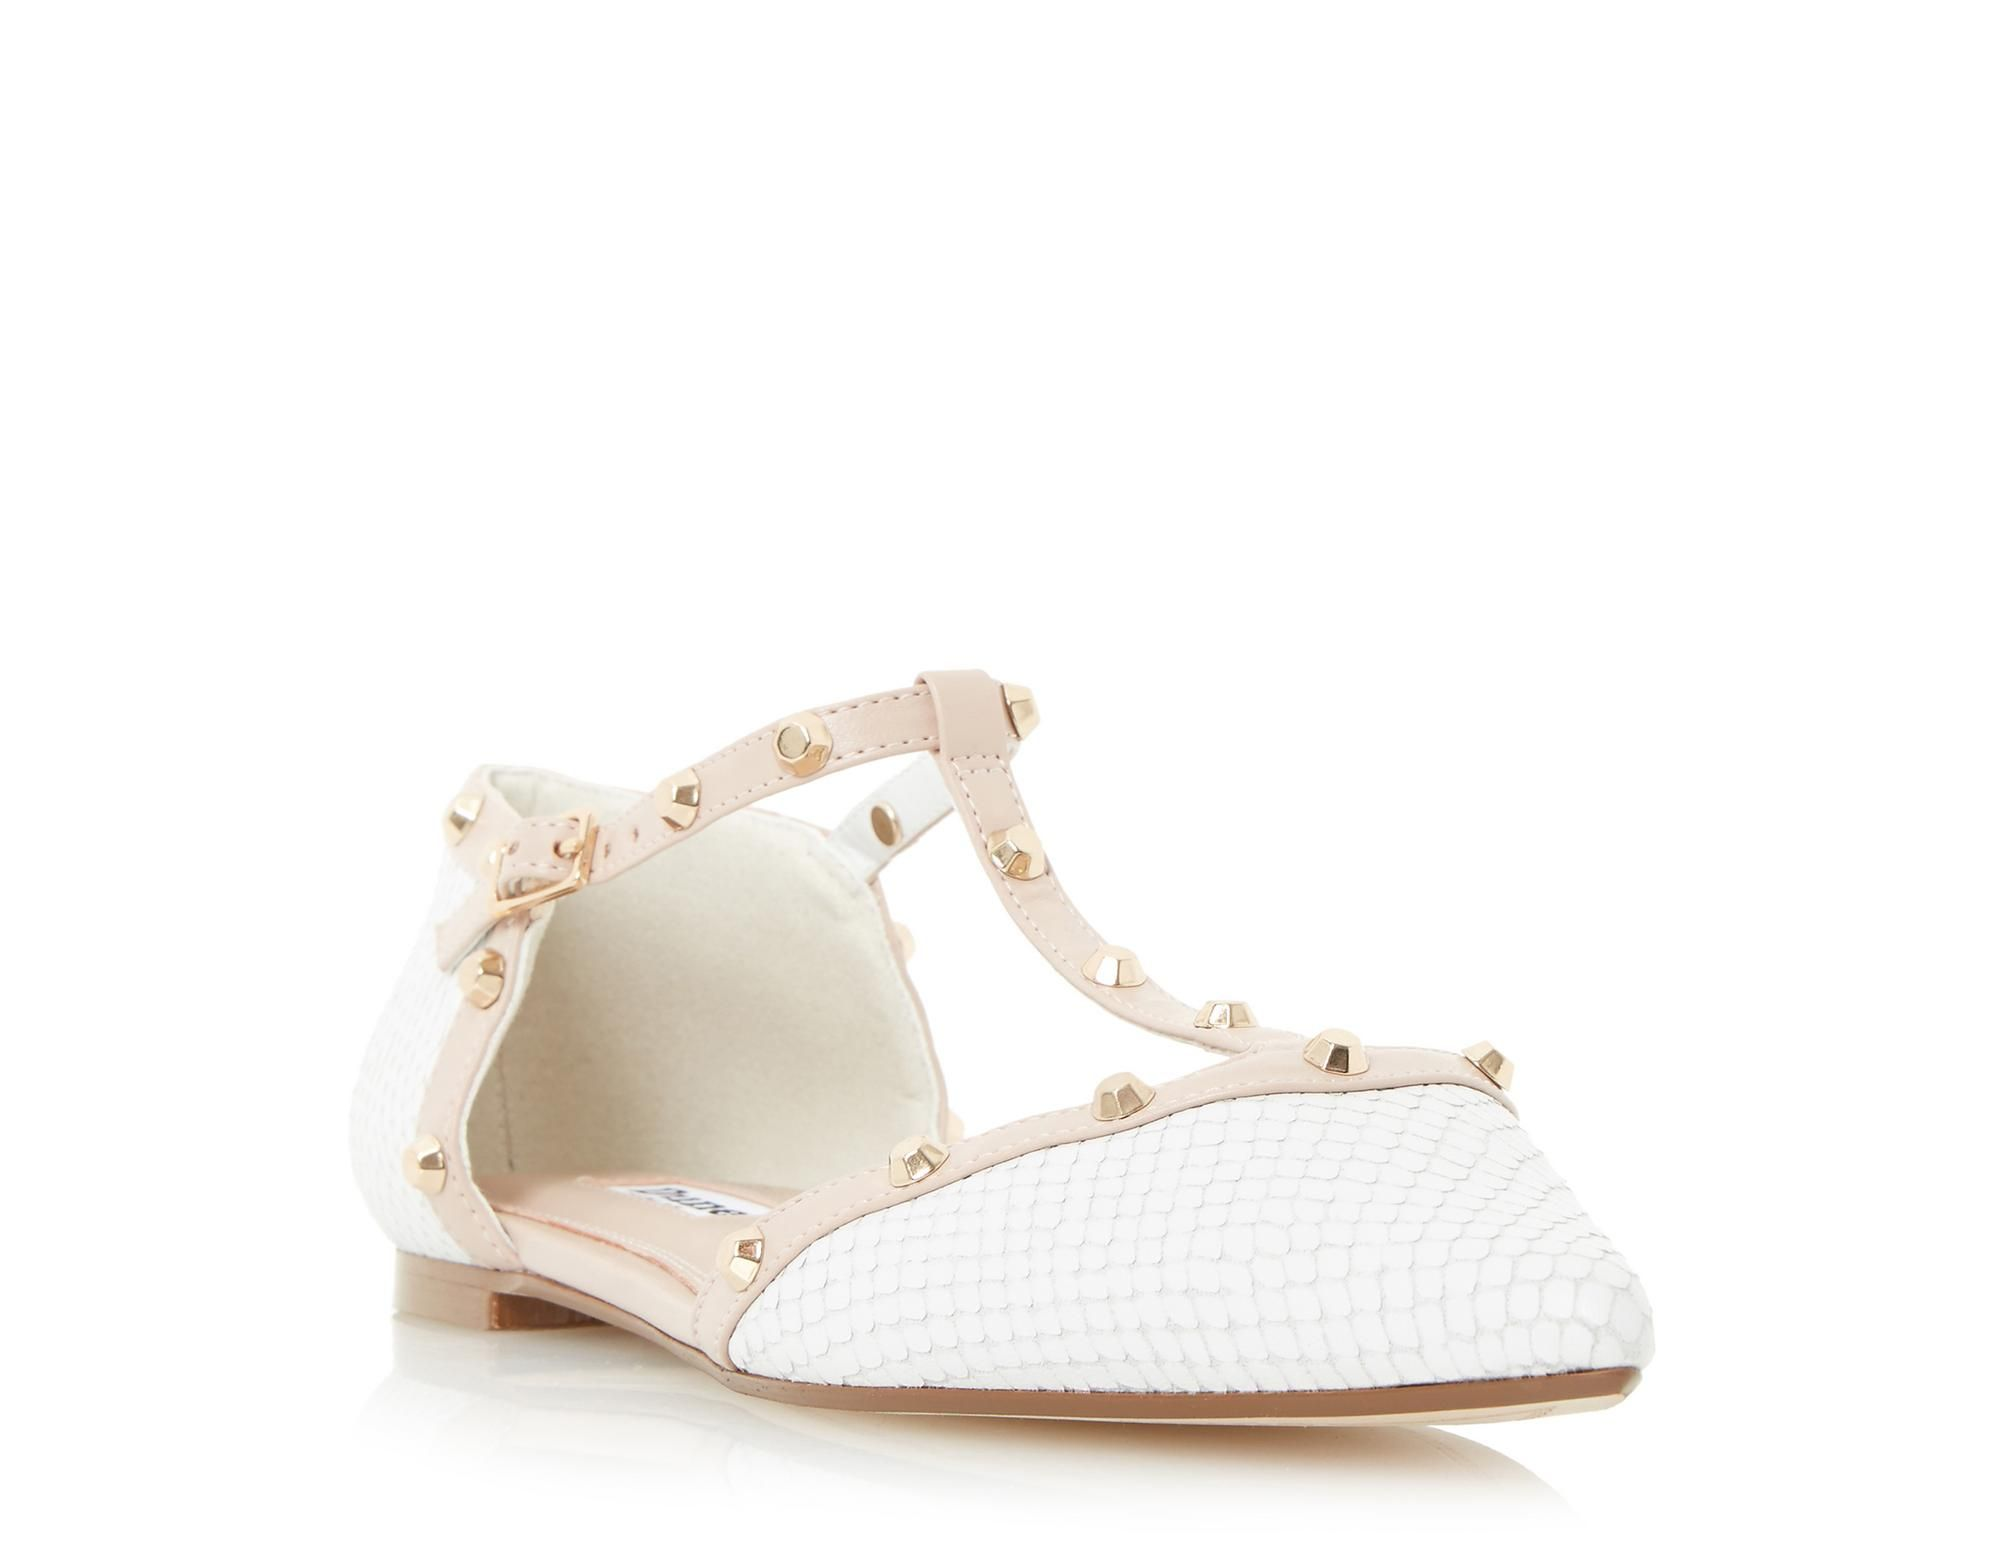 478febb523 Sport some easy everyday style with this chic pointed toe flat shoe.  Features a two